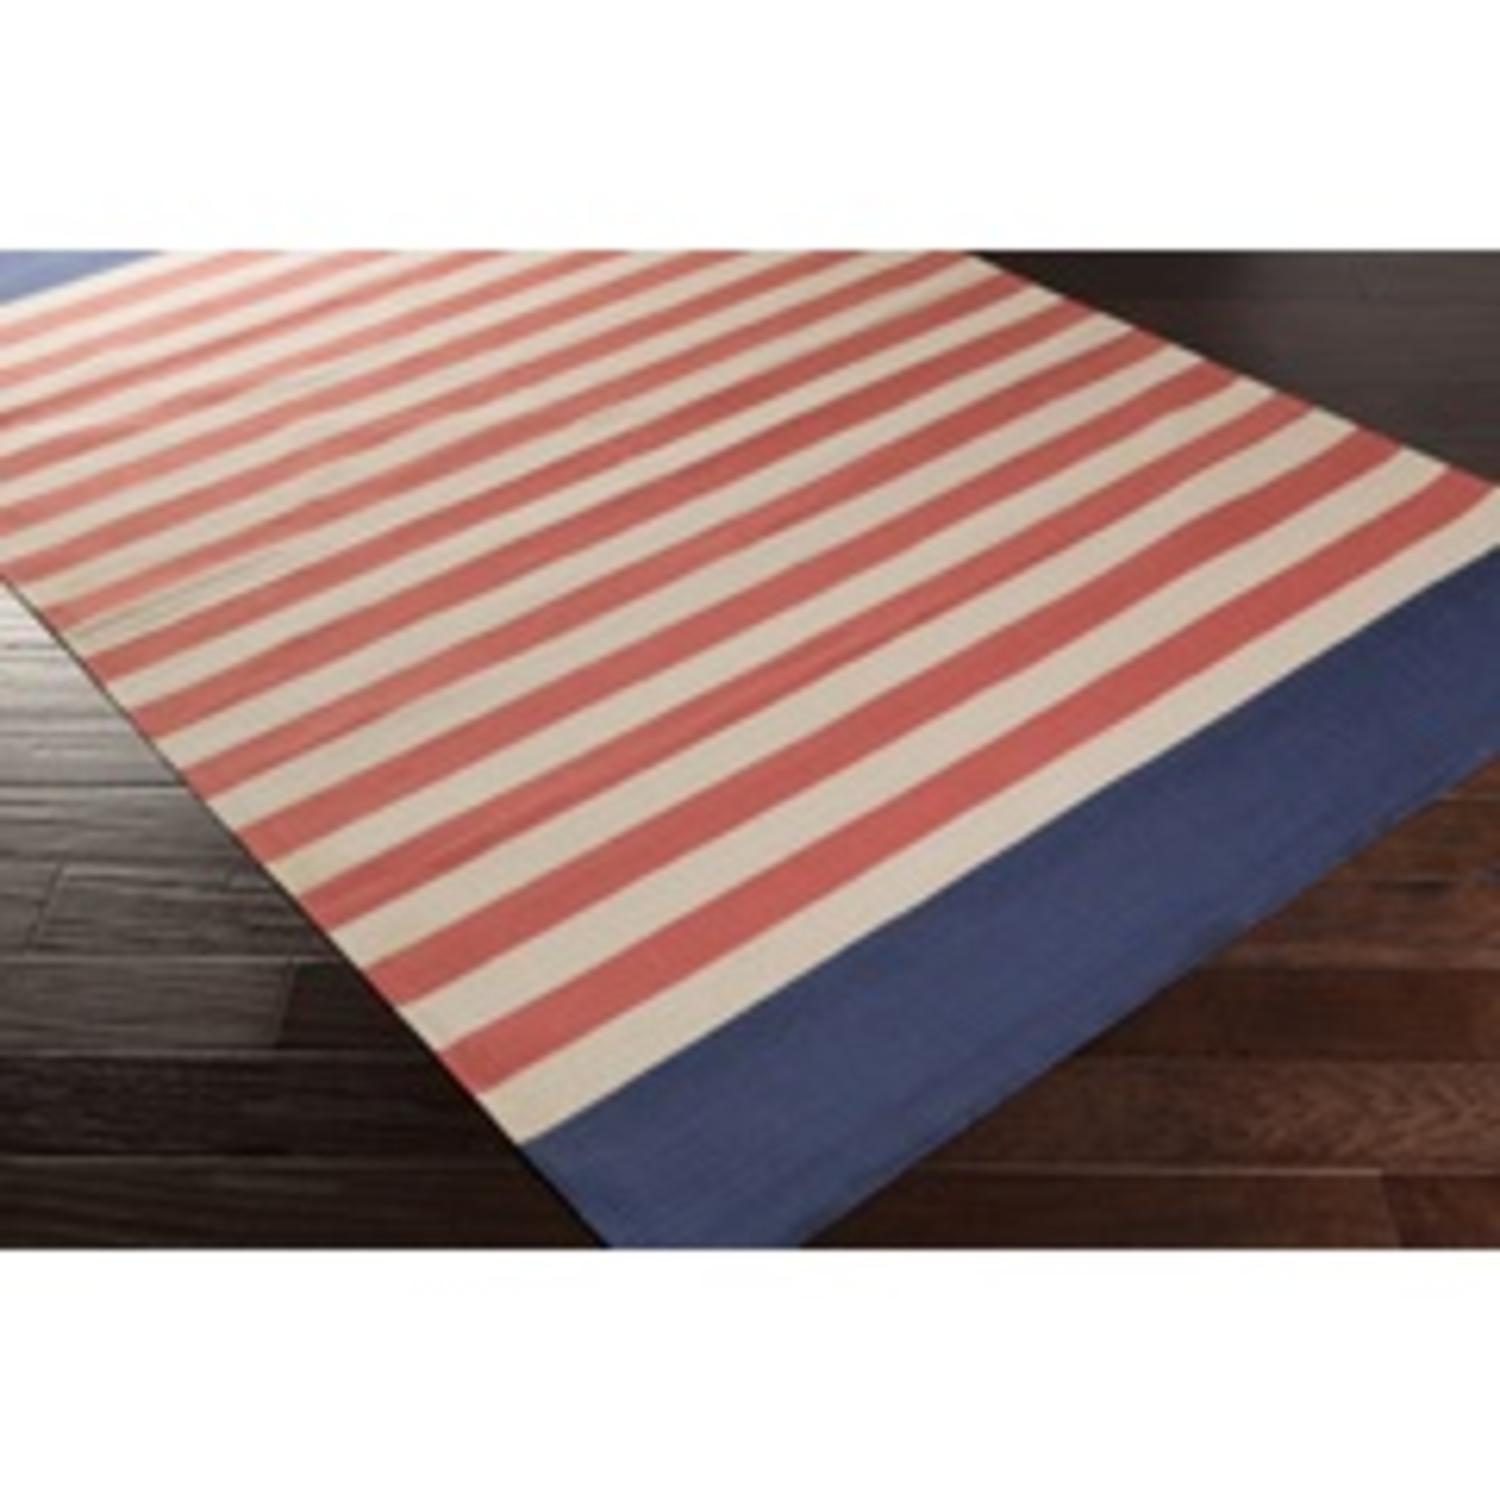 2 39 x 3 39 clean striped pink and navy blue reversible hand woven area rug tanga. Black Bedroom Furniture Sets. Home Design Ideas